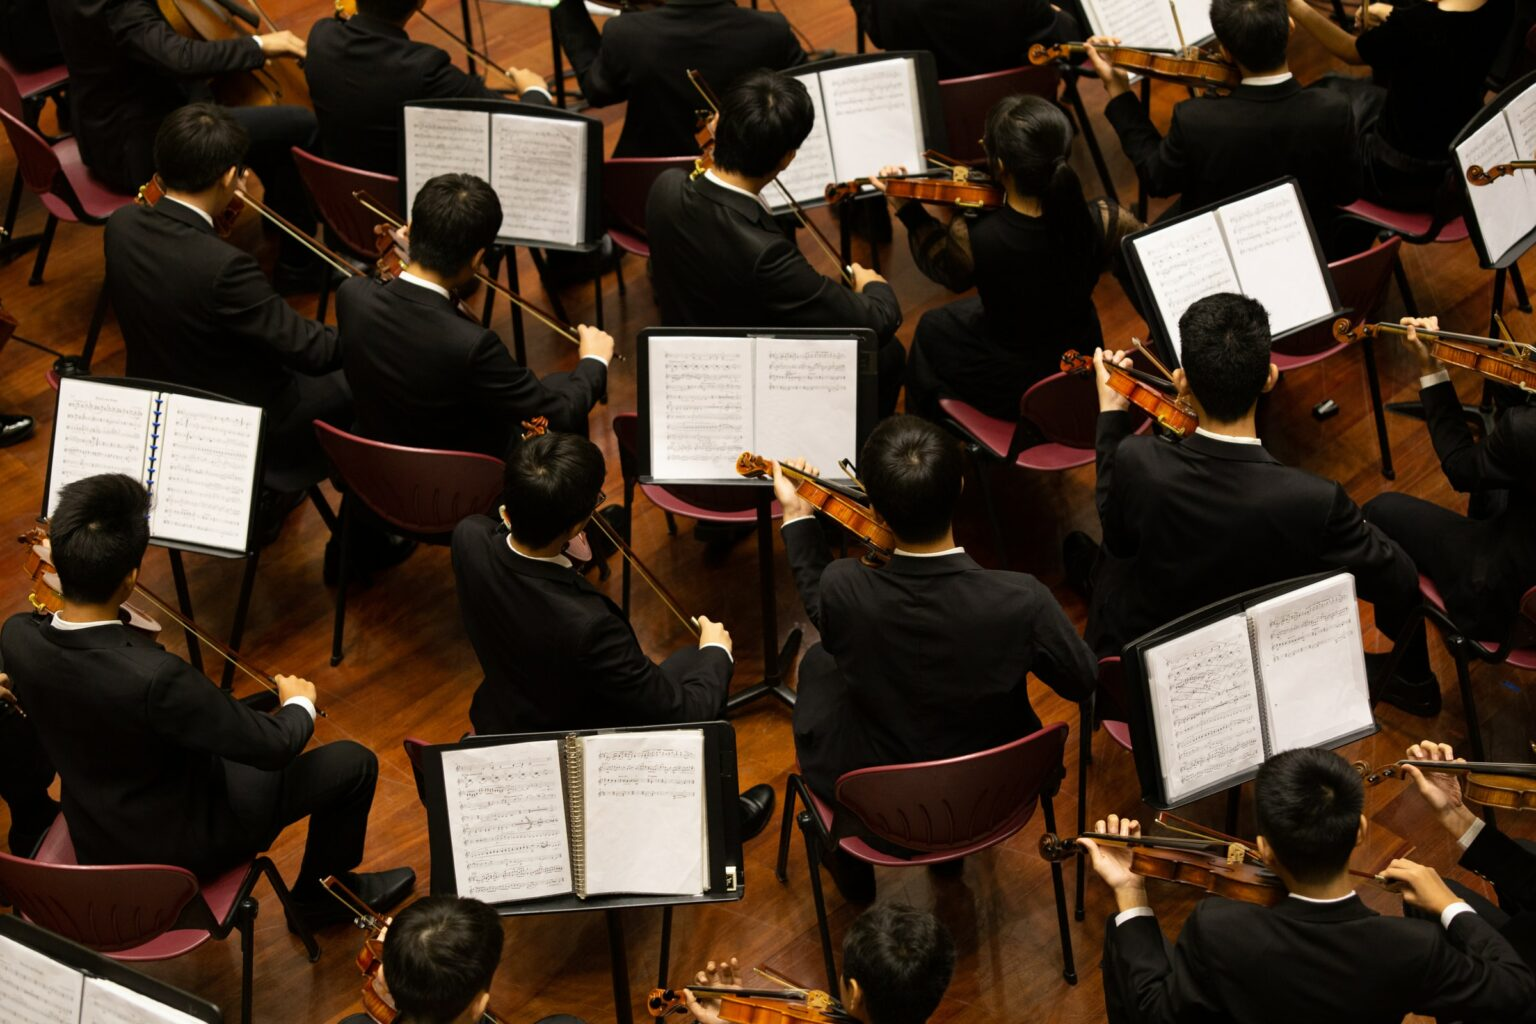 Apple buys Primephonic: Apple Music's classical catalog will get a big boost from Primephonic.